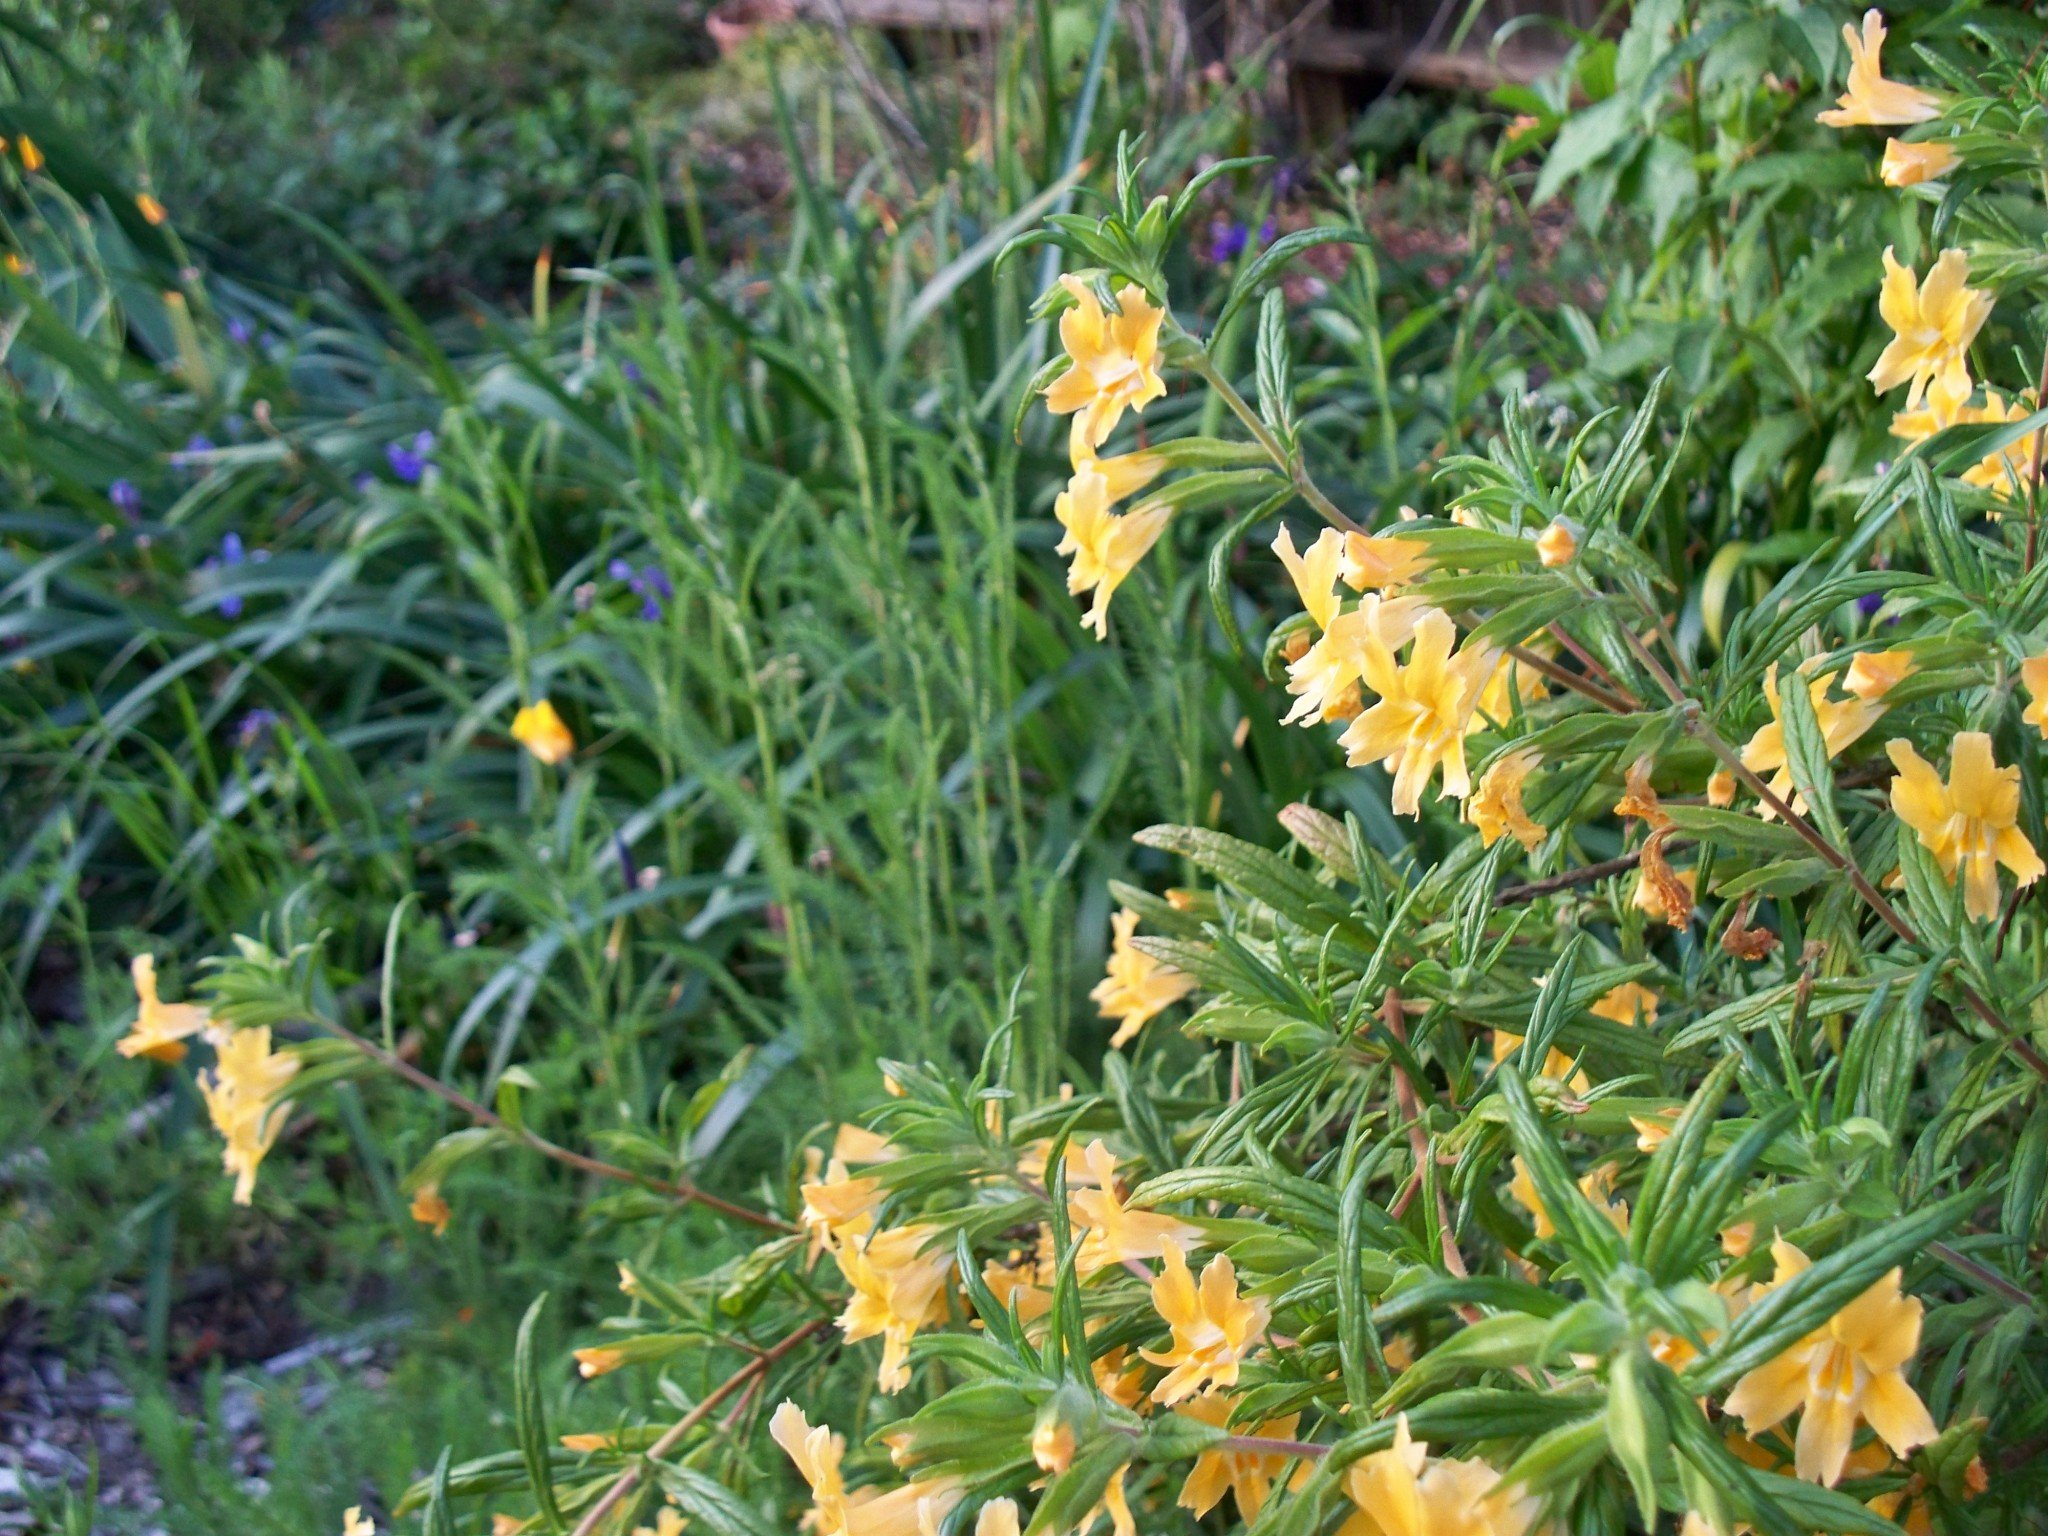 Mimulus aurantiacus – sticky monkeyflower